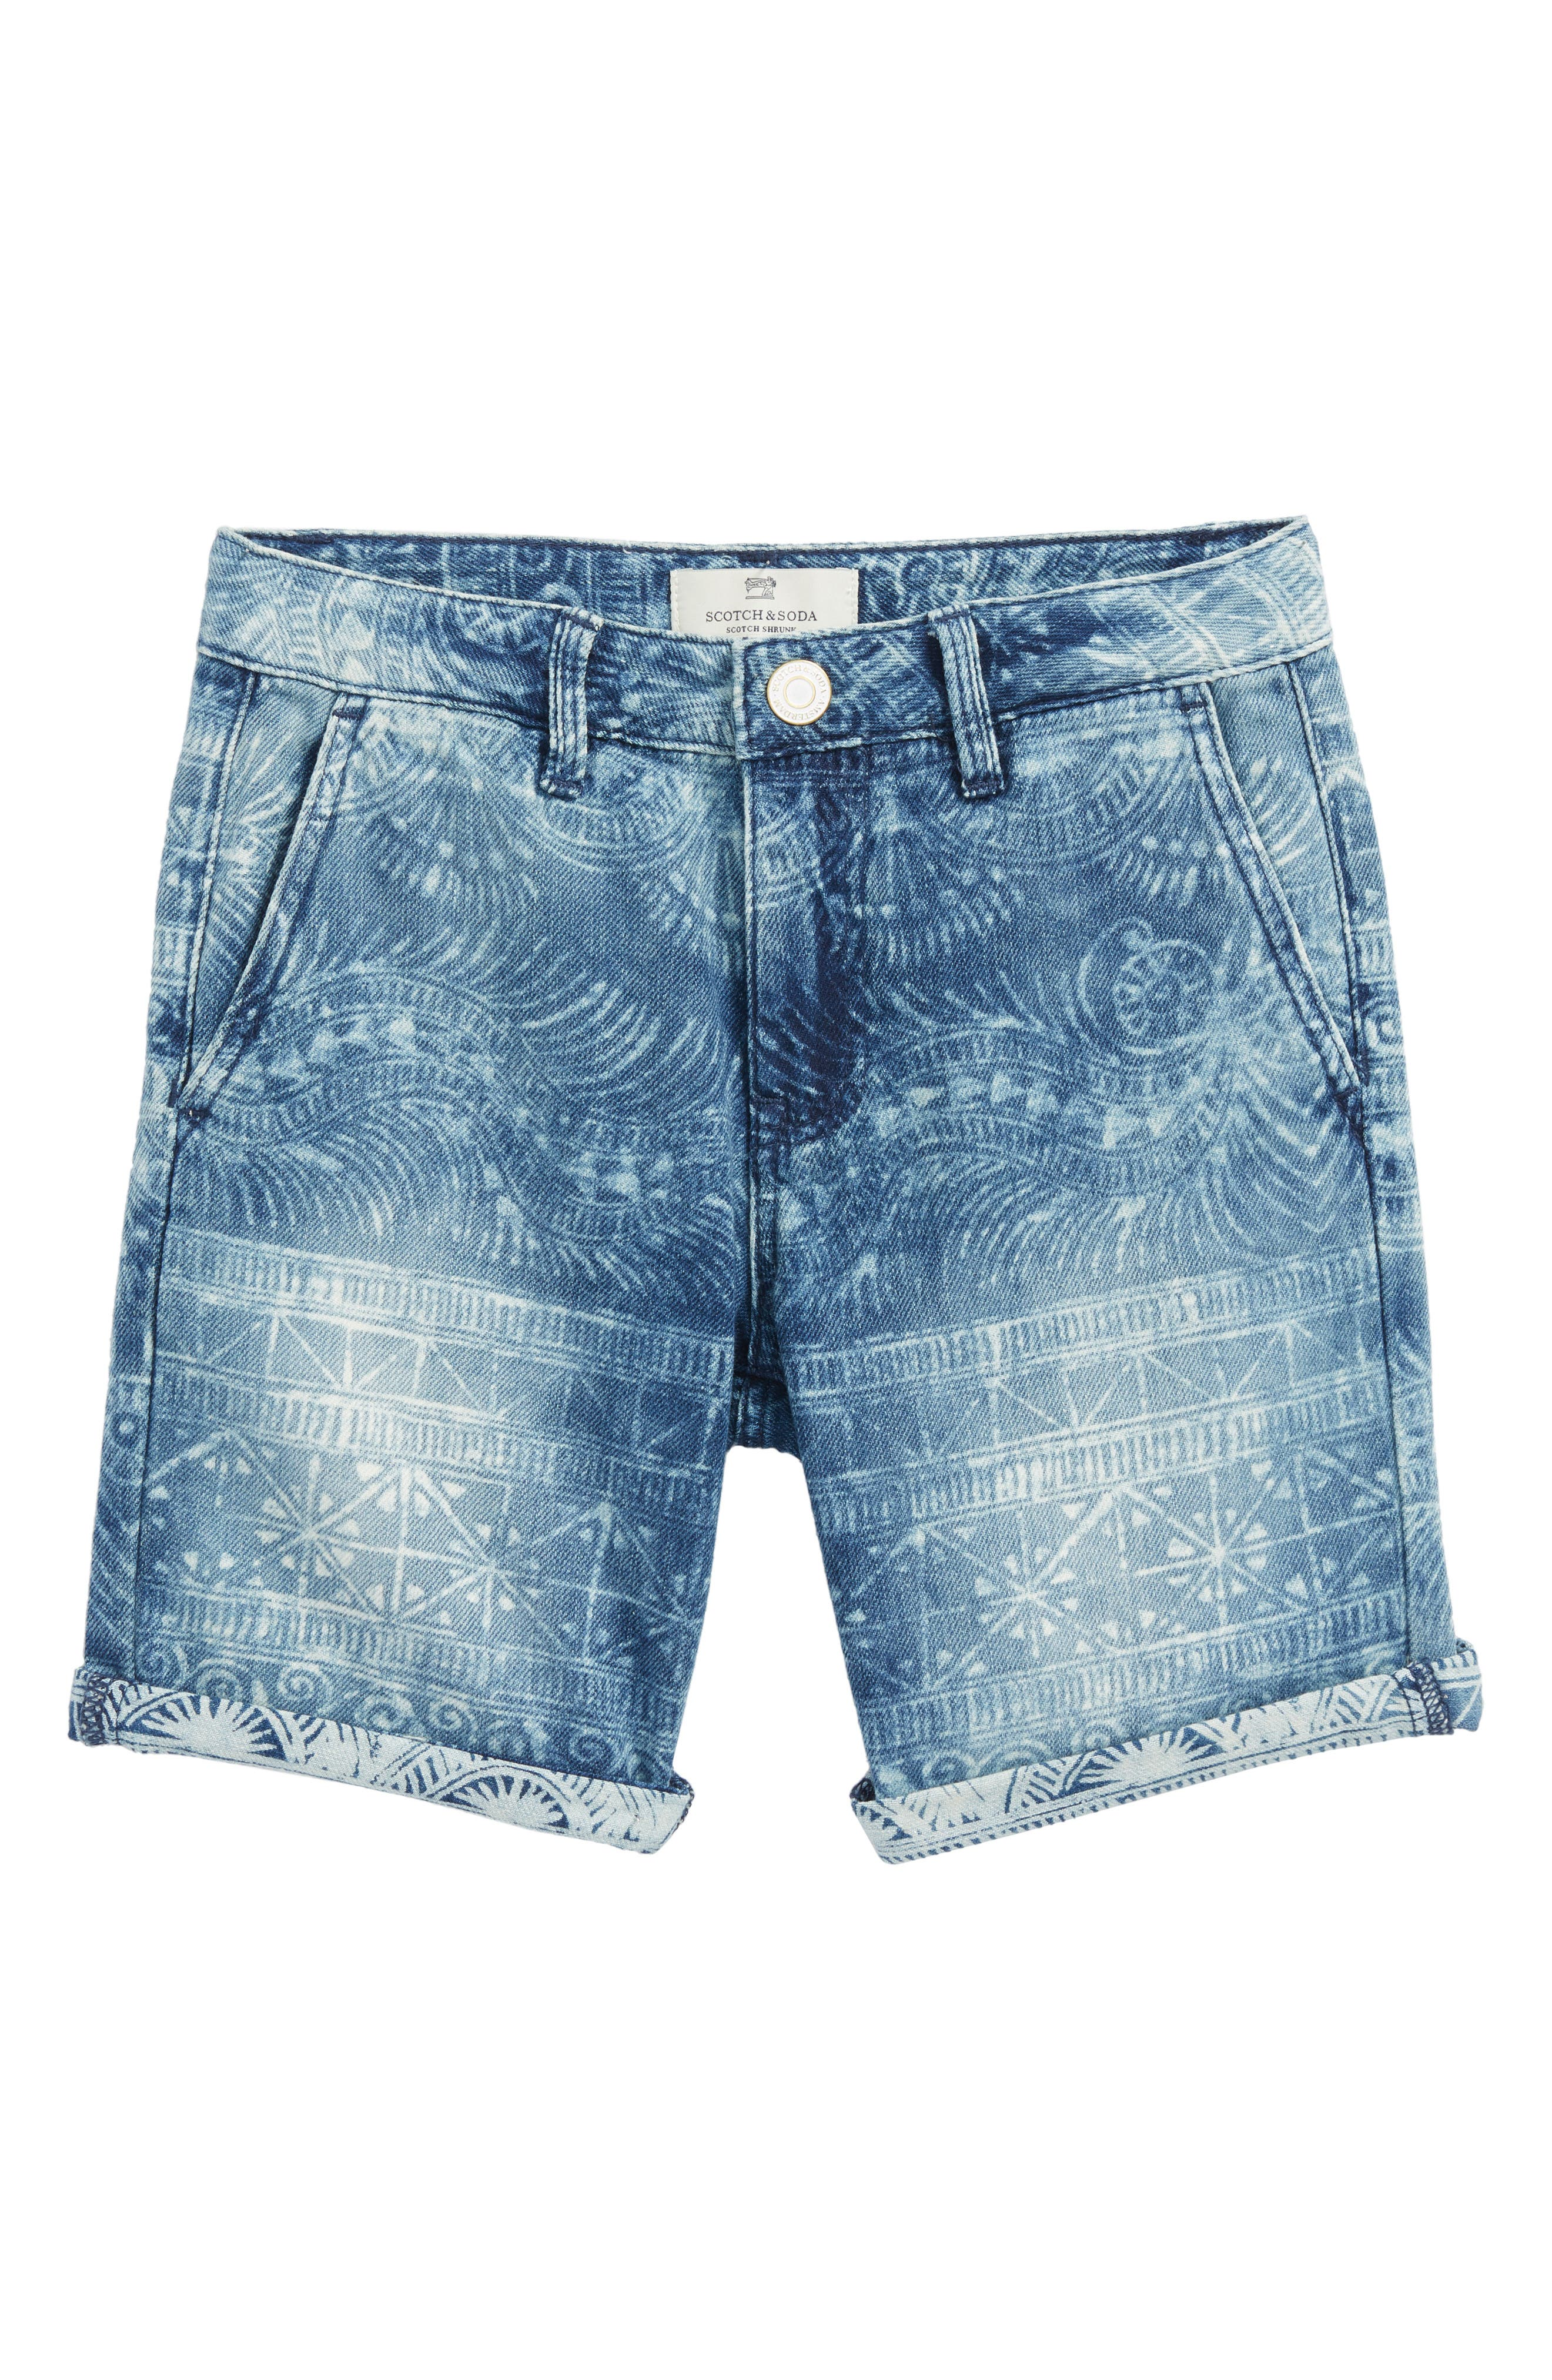 Alternate Image 1 Selected - Scotch Shrunk Denim Chino Shorts (Little Boys & Big Boys)